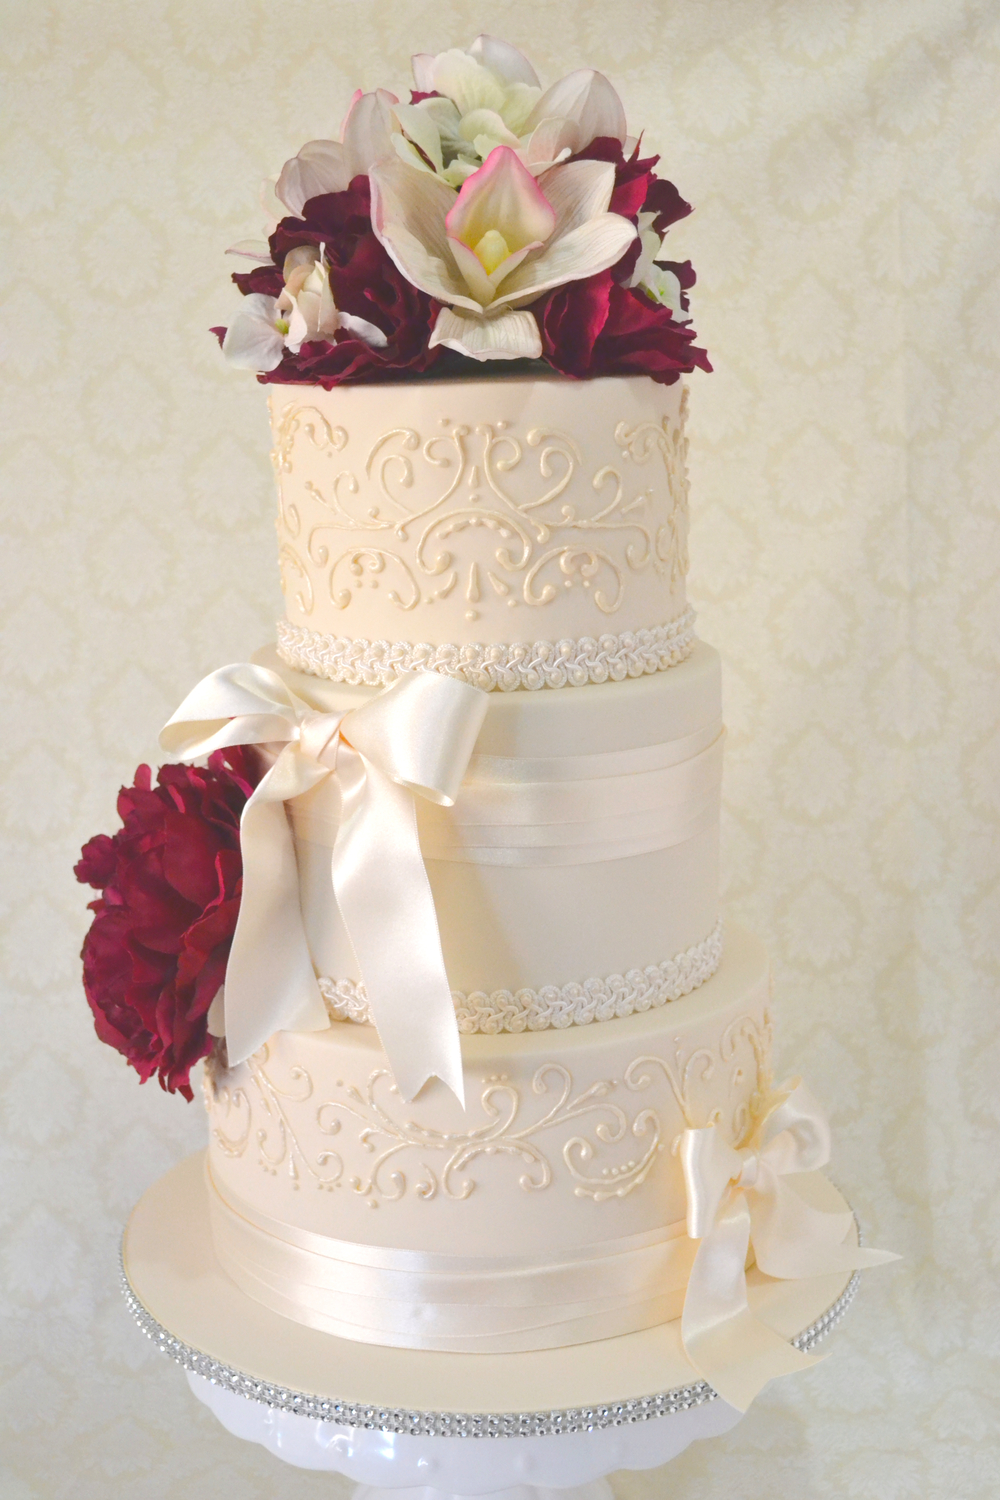 Nicole Reid Wedding cake.jpg